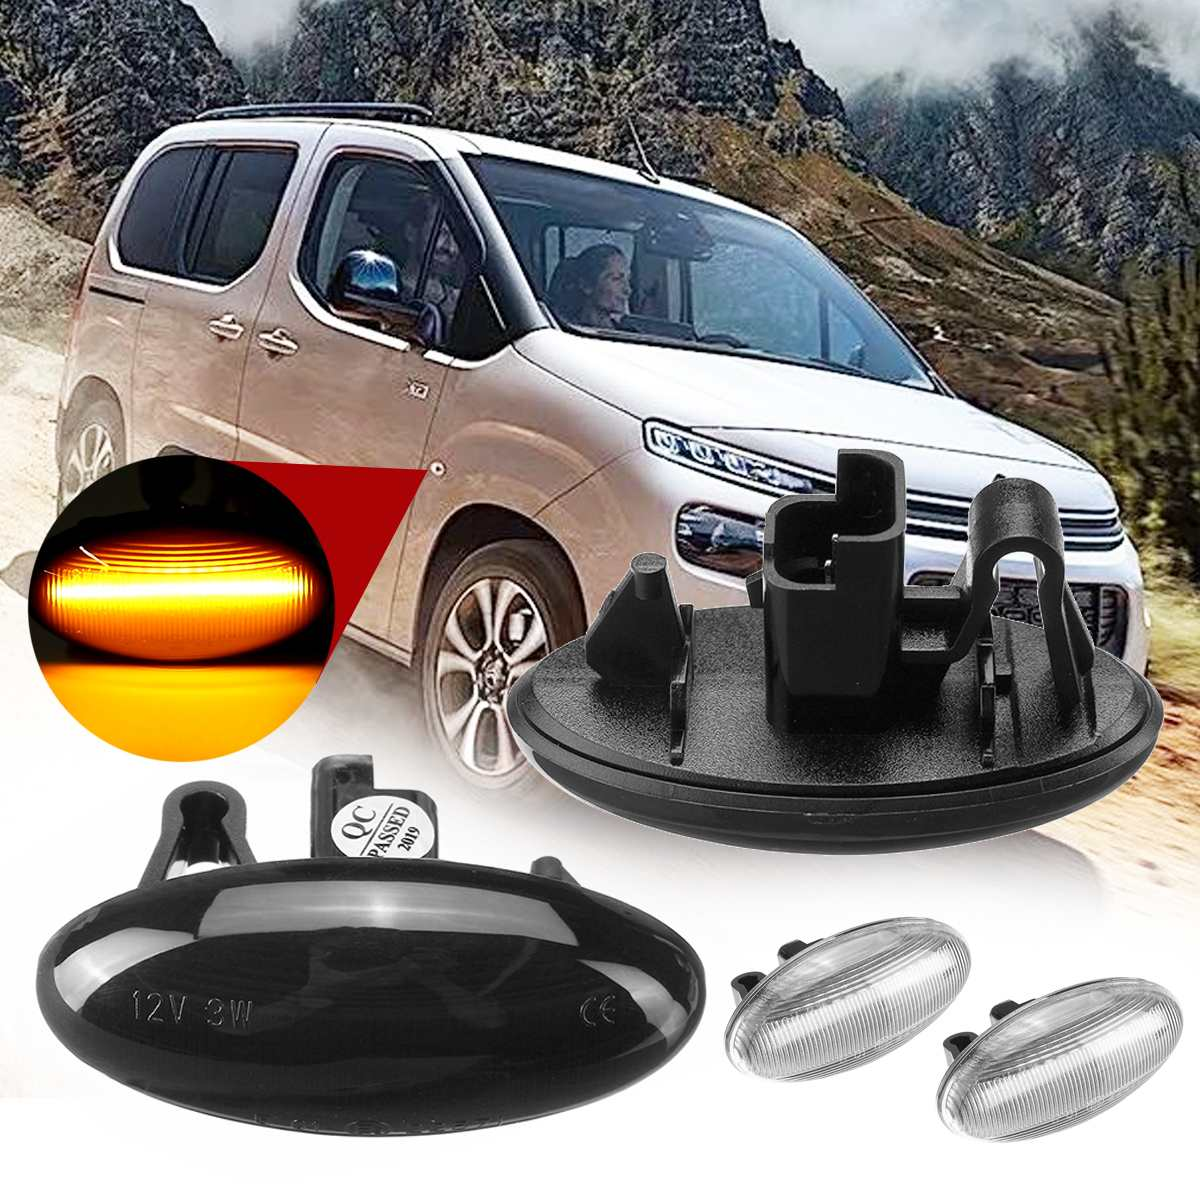 2pcs Dynamic Side Marker Light Flowing <font><b>Led</b></font> Turn Signal 12V Panel Light Side Light Amber for <font><b>Peugeot</b></font> 307 206 <font><b>407</b></font> 107 for Citroen image